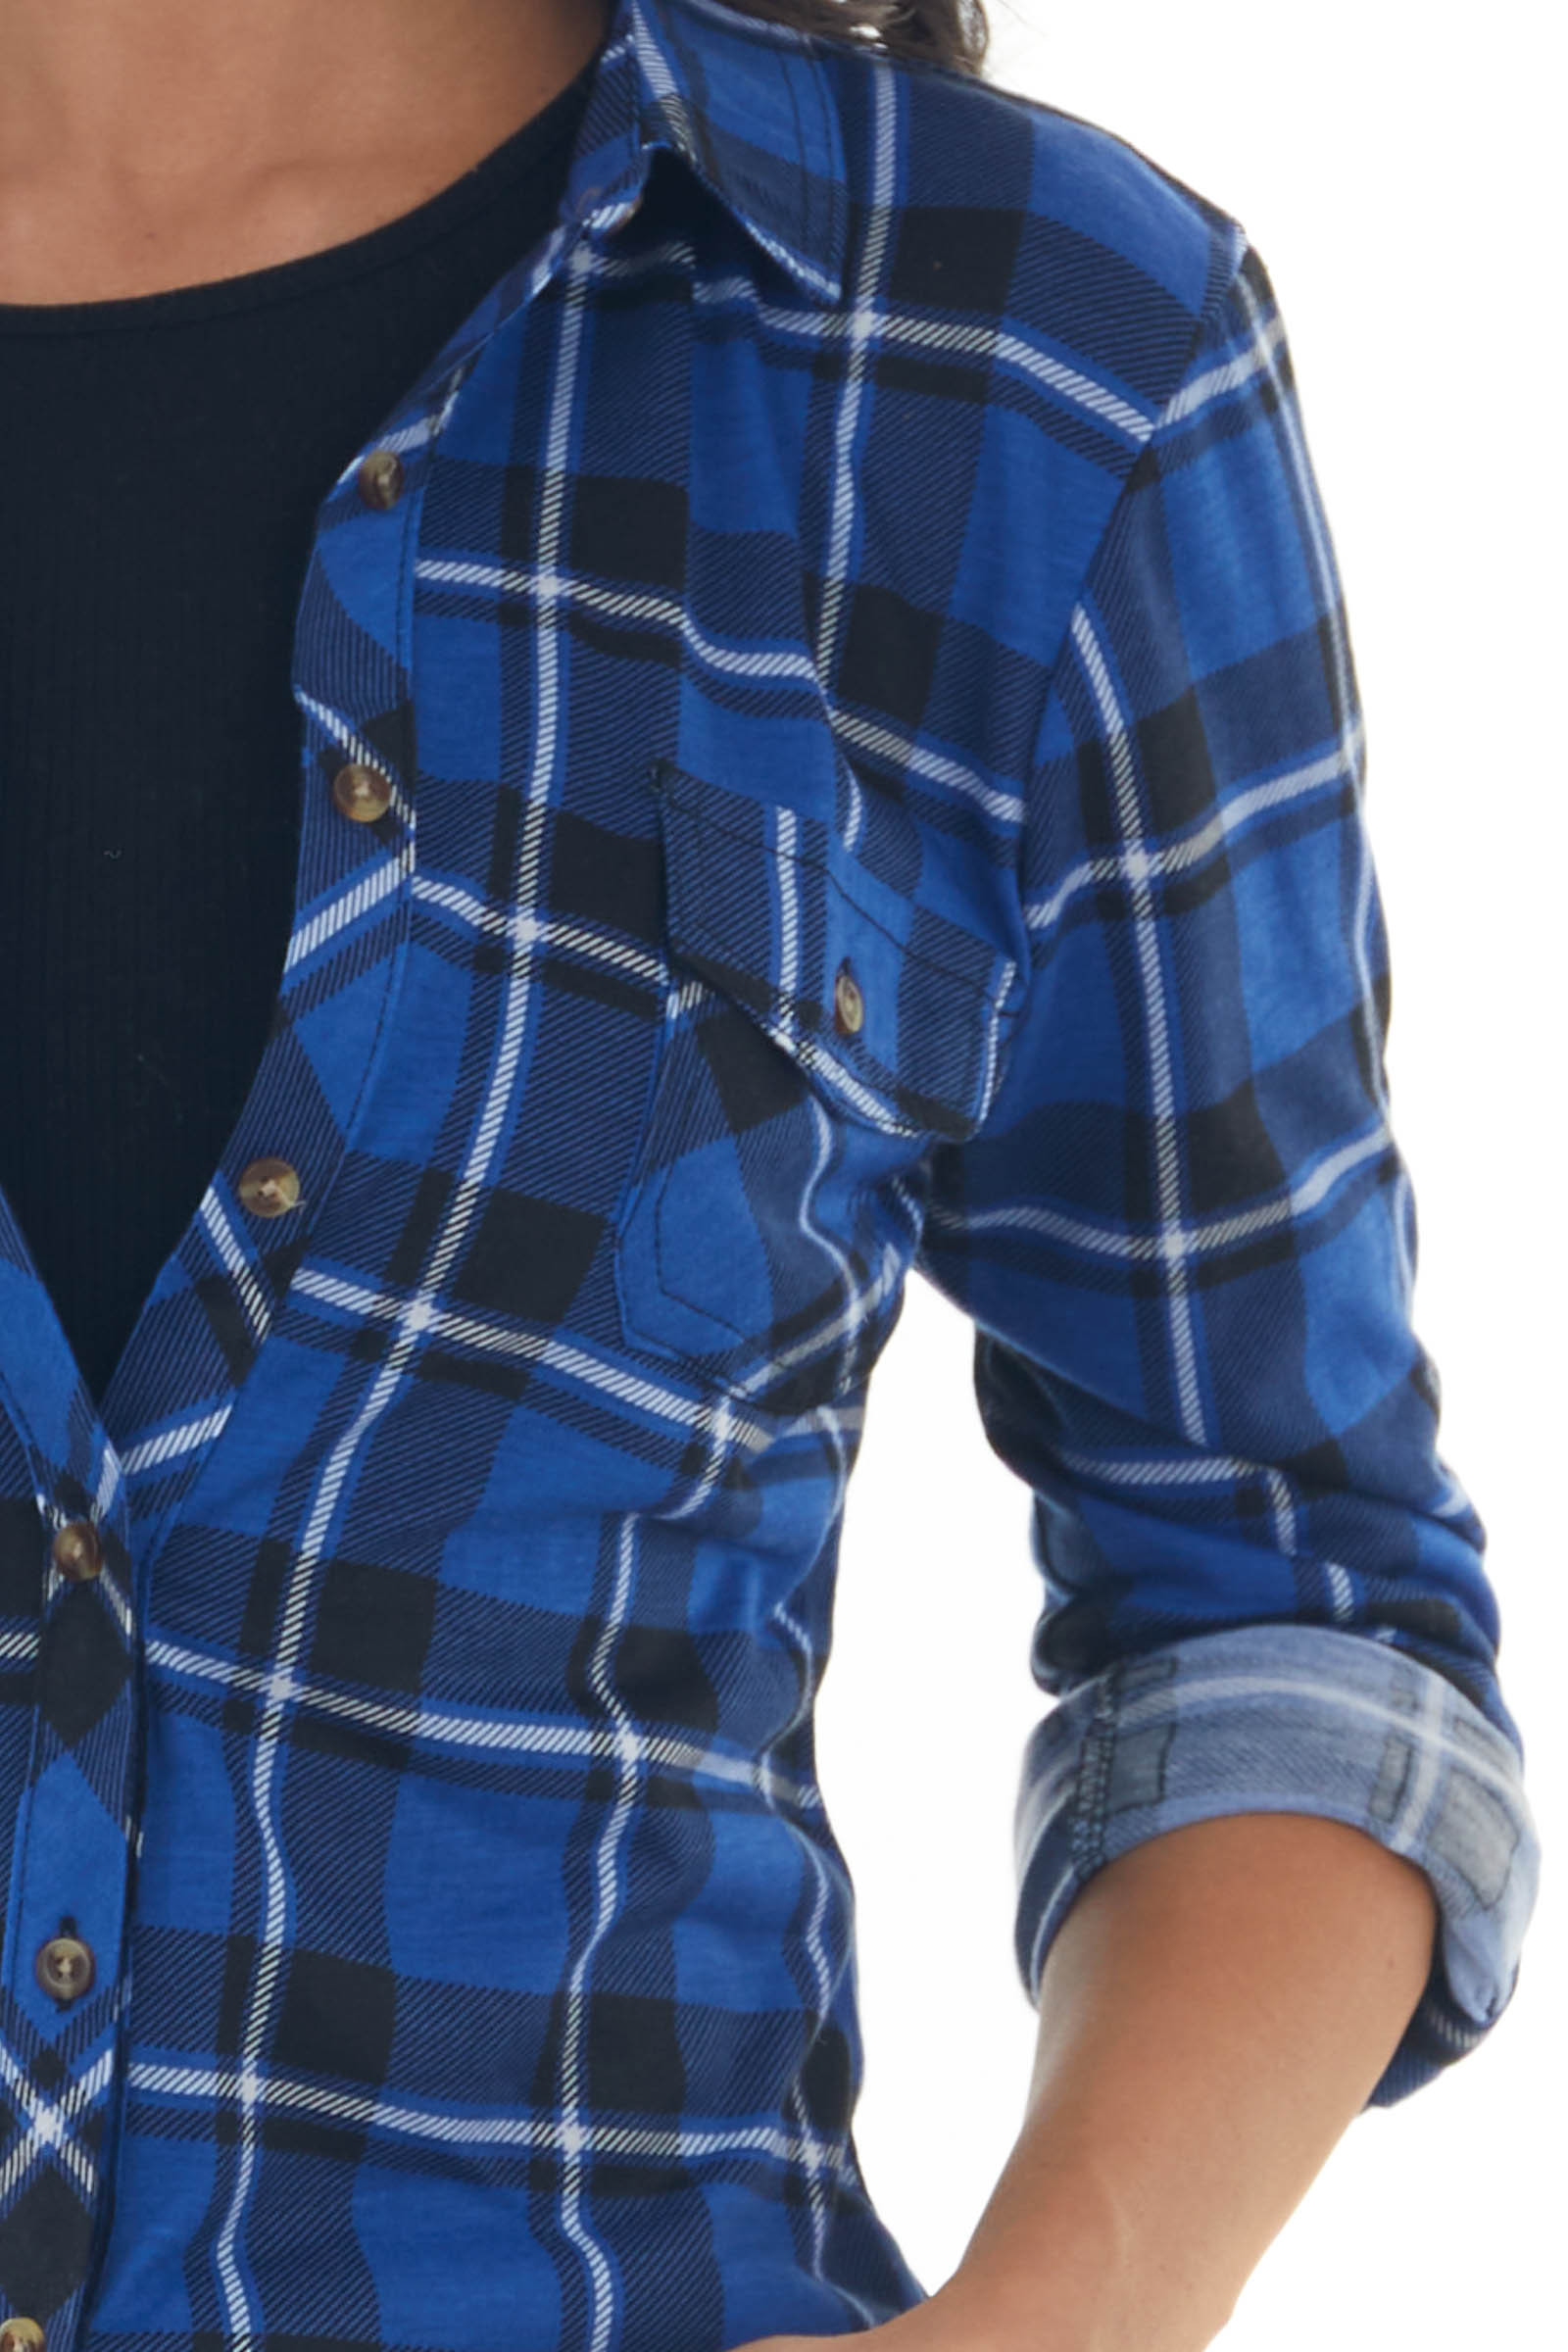 Cobalt and Black Plaid Top with Chest Pocket